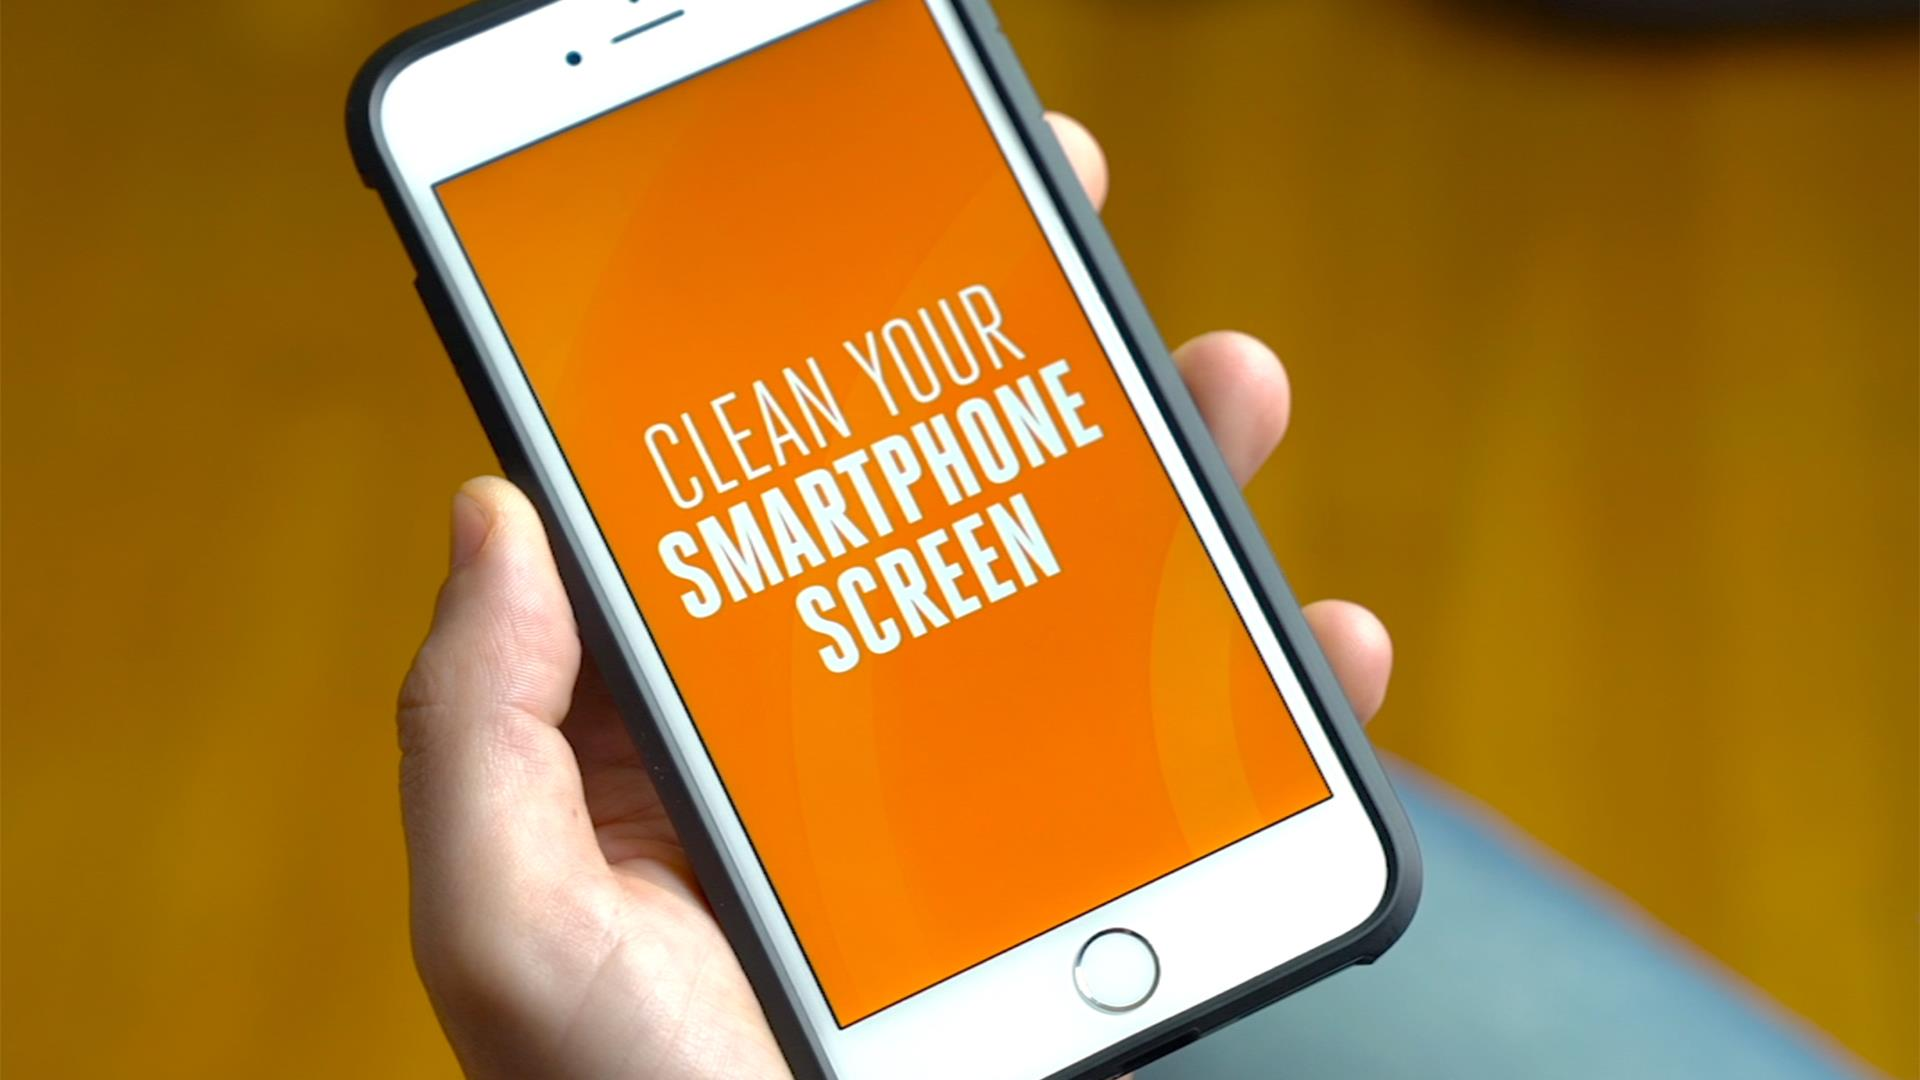 How To Clean Mobile Phone Touch Screen – 2021